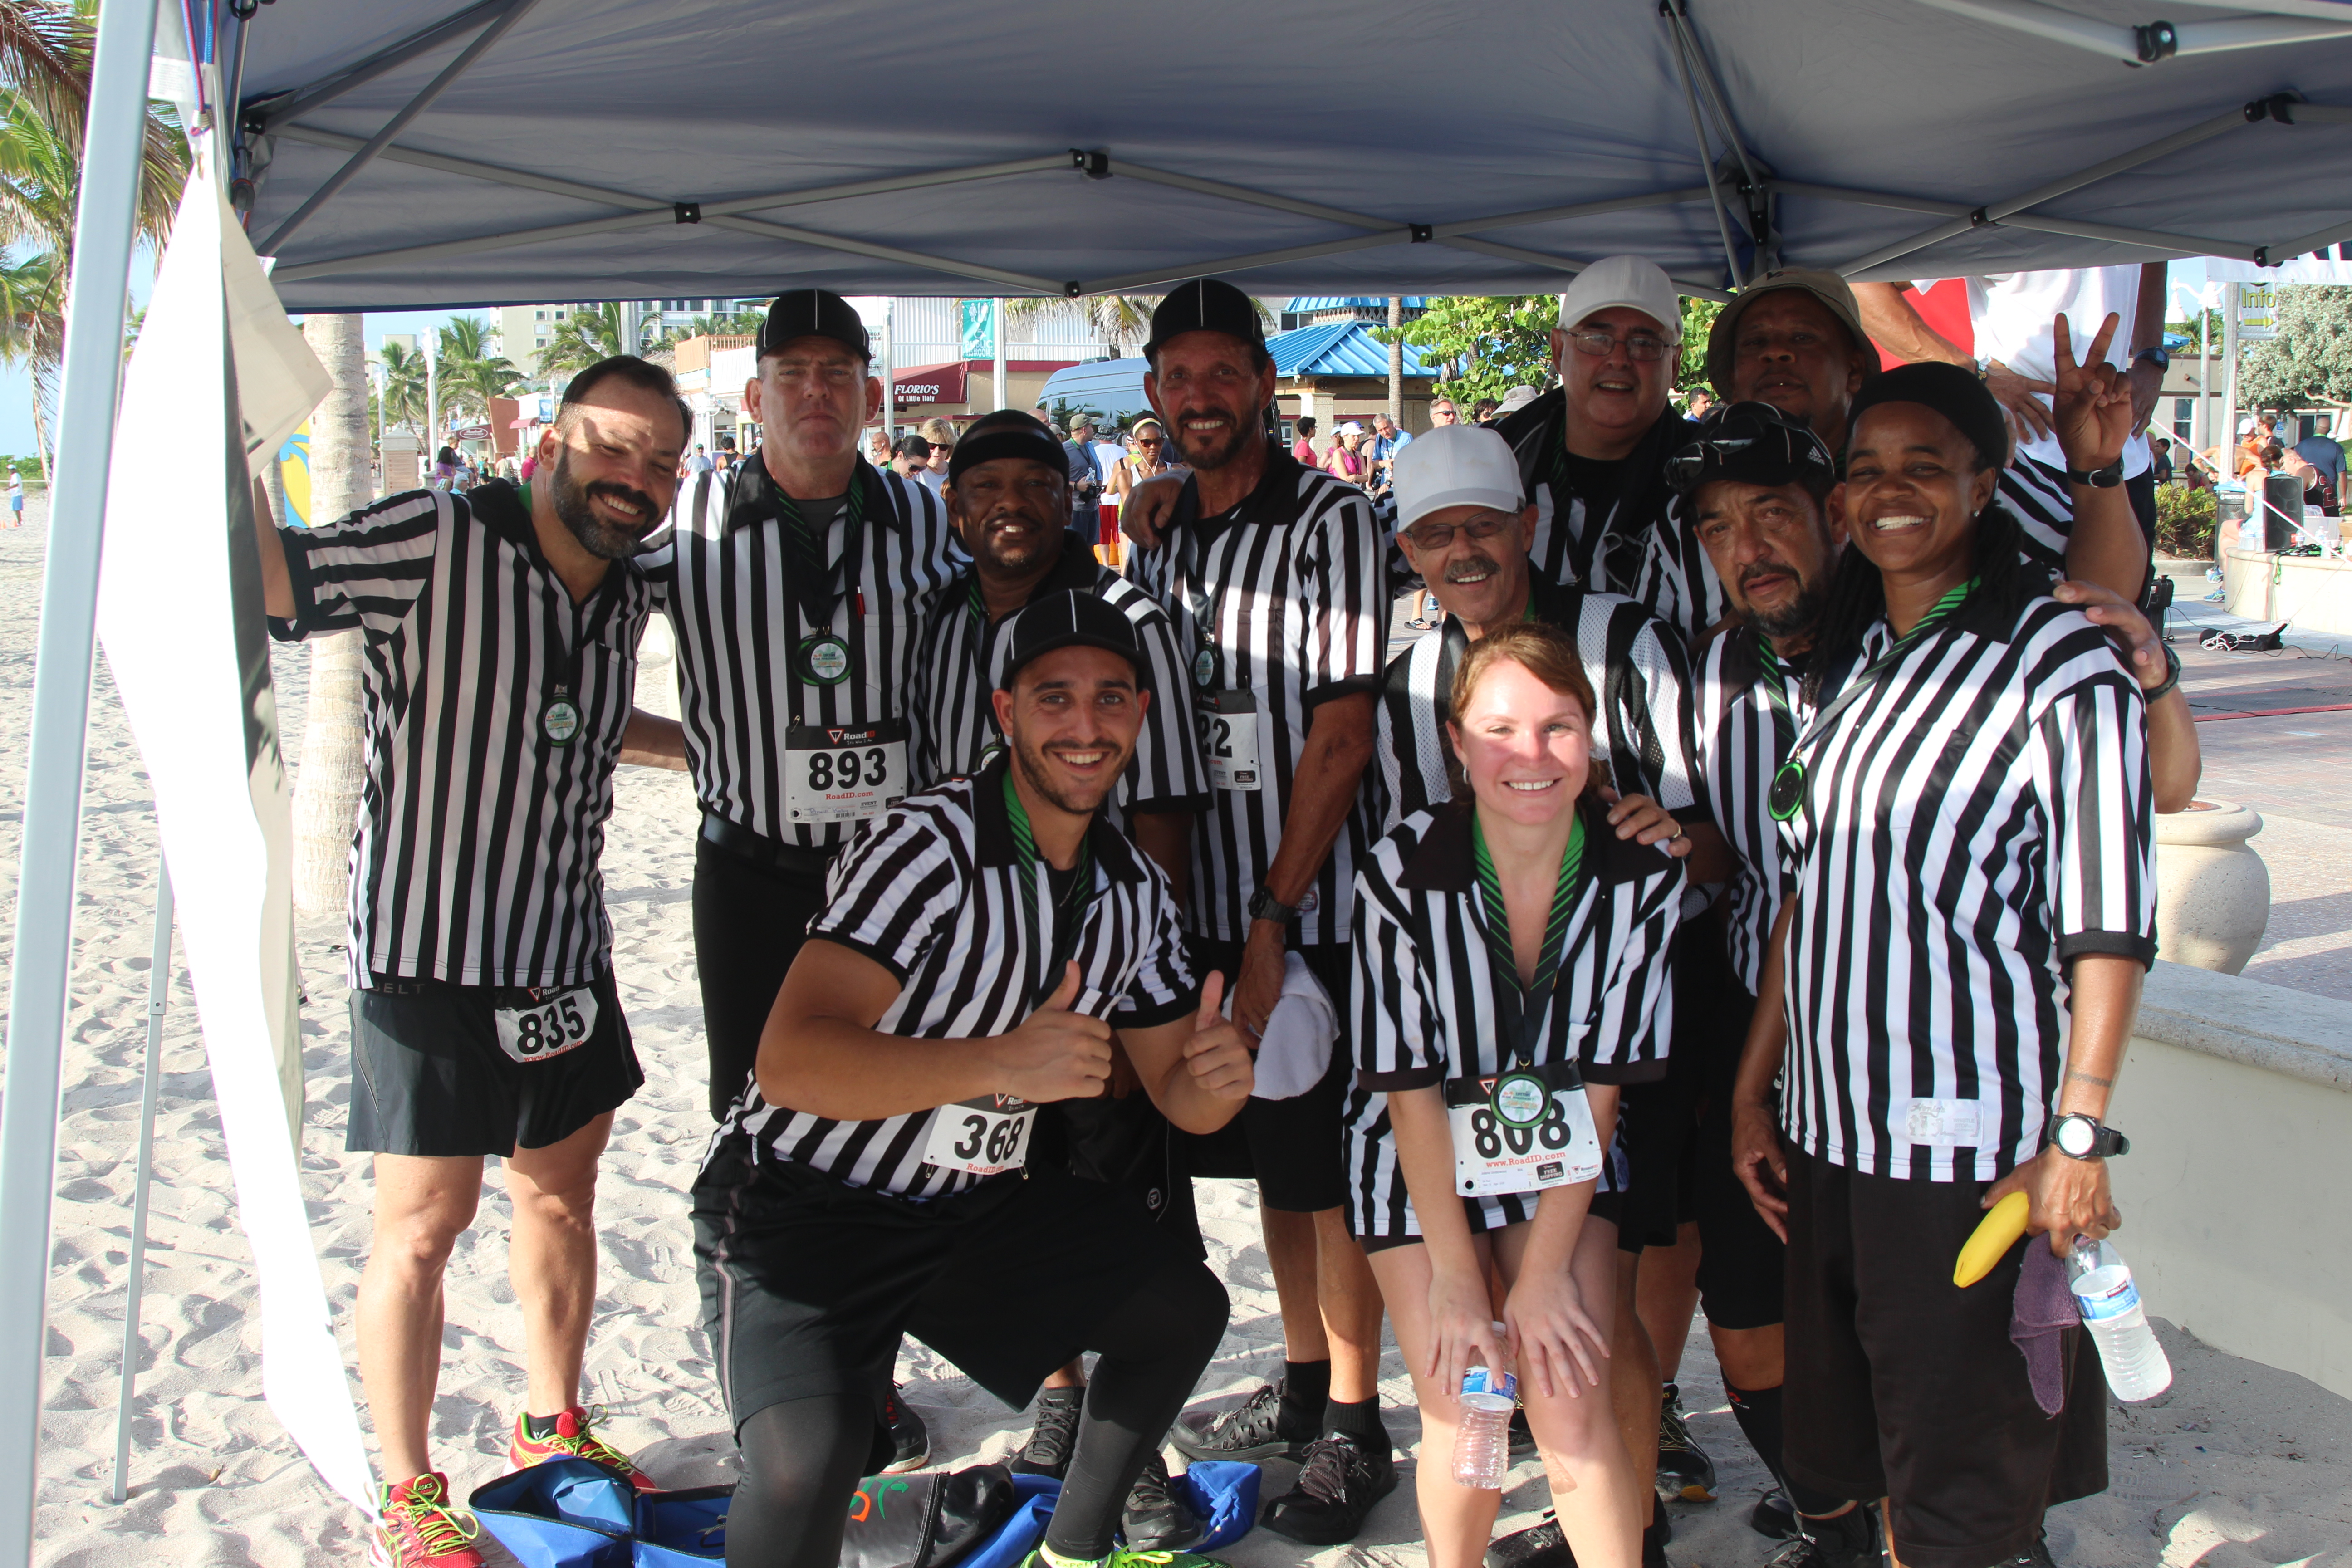 VIDEO: UConcussion at Running Refs 5K - University of Miami